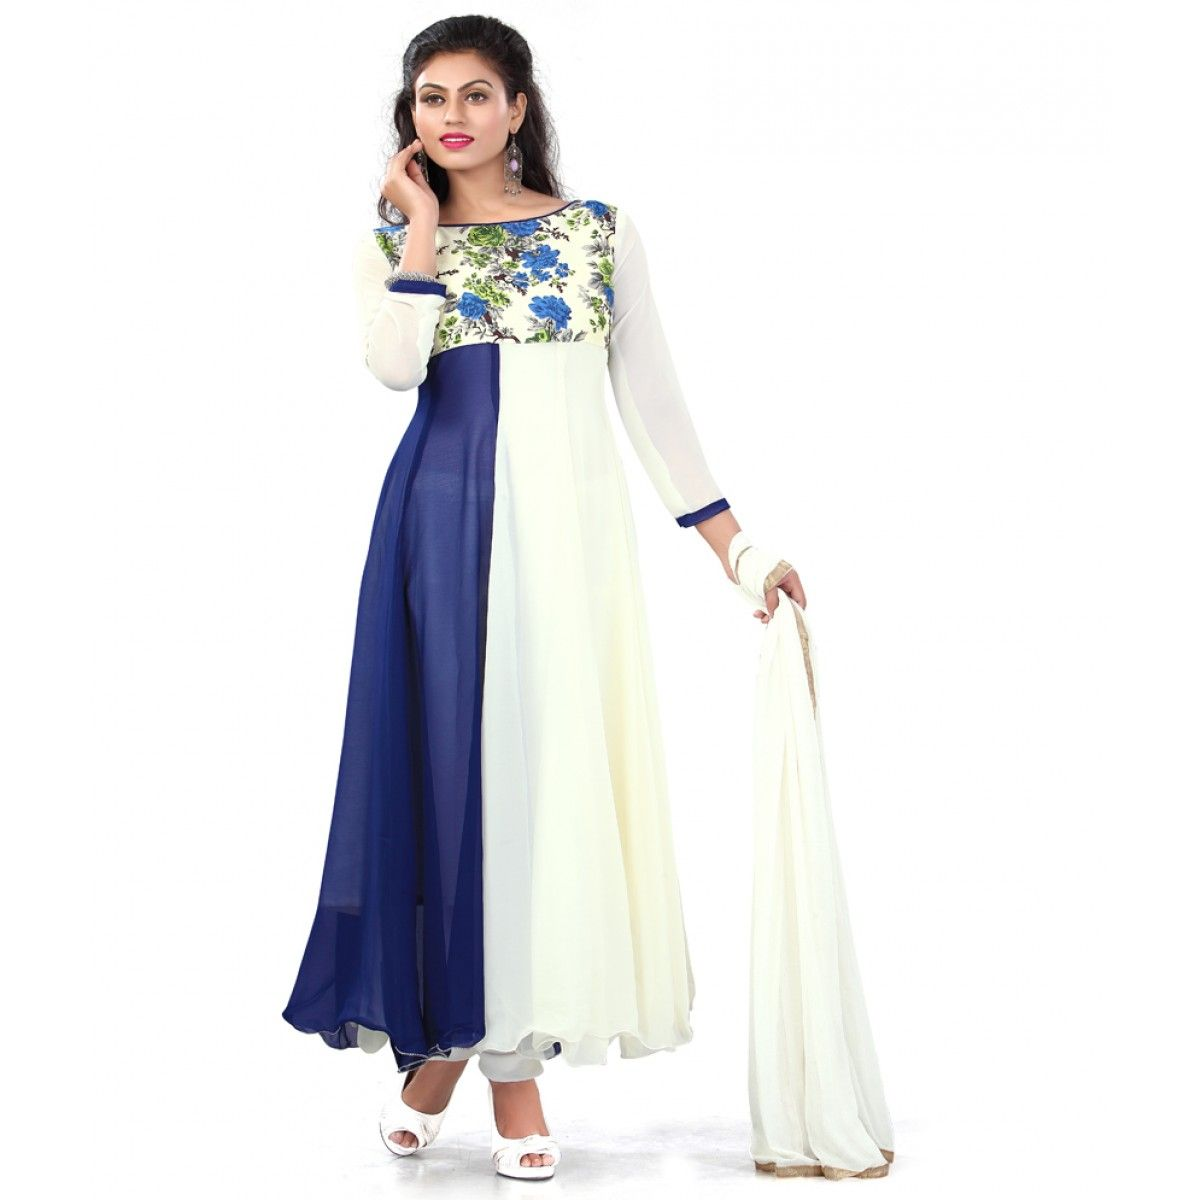 World's Most Selling Peacock  Bluecolor Gown type Salvar Suit